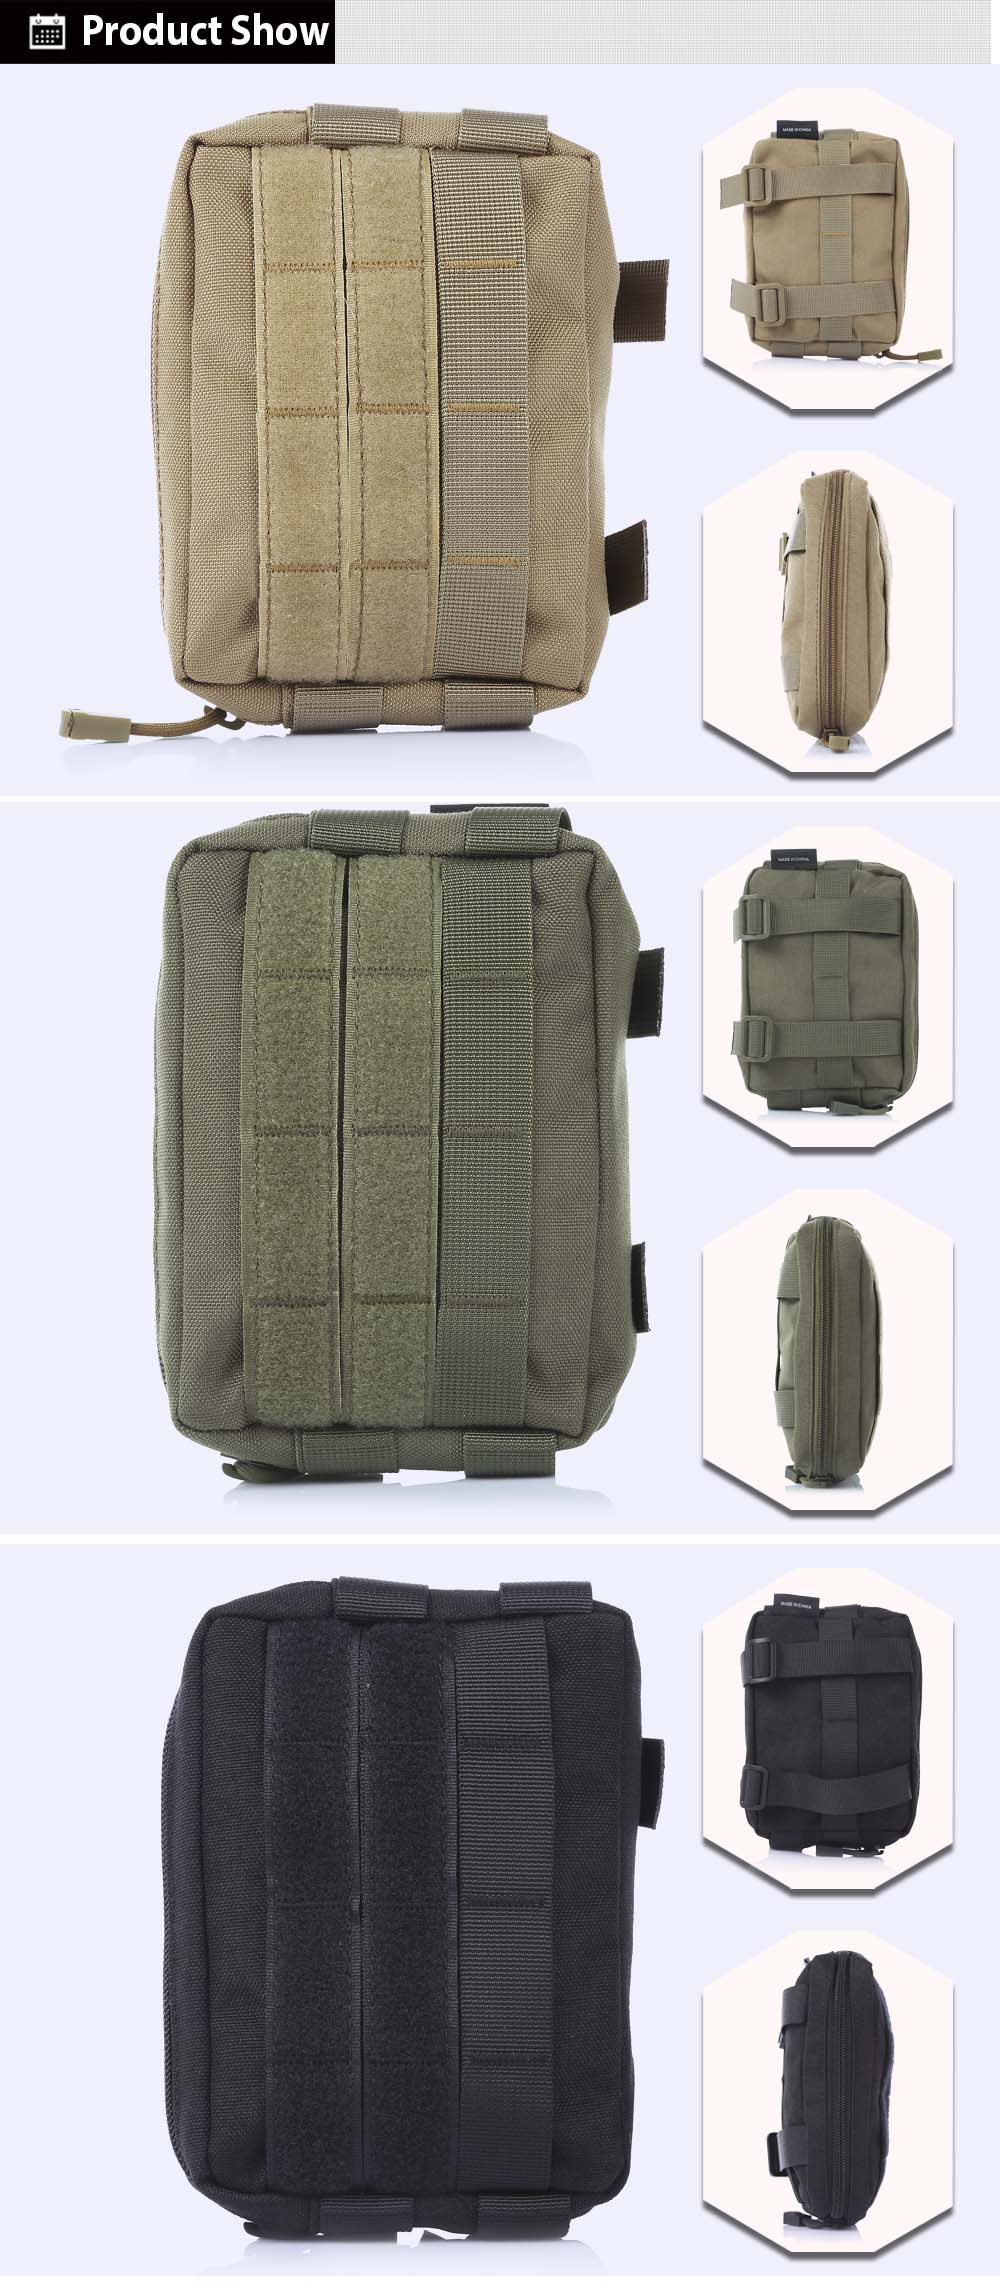 FREEKNIGHT LM - 08 Portable Outdoor Tactical Bag Military Nylon Phone Pouch Case